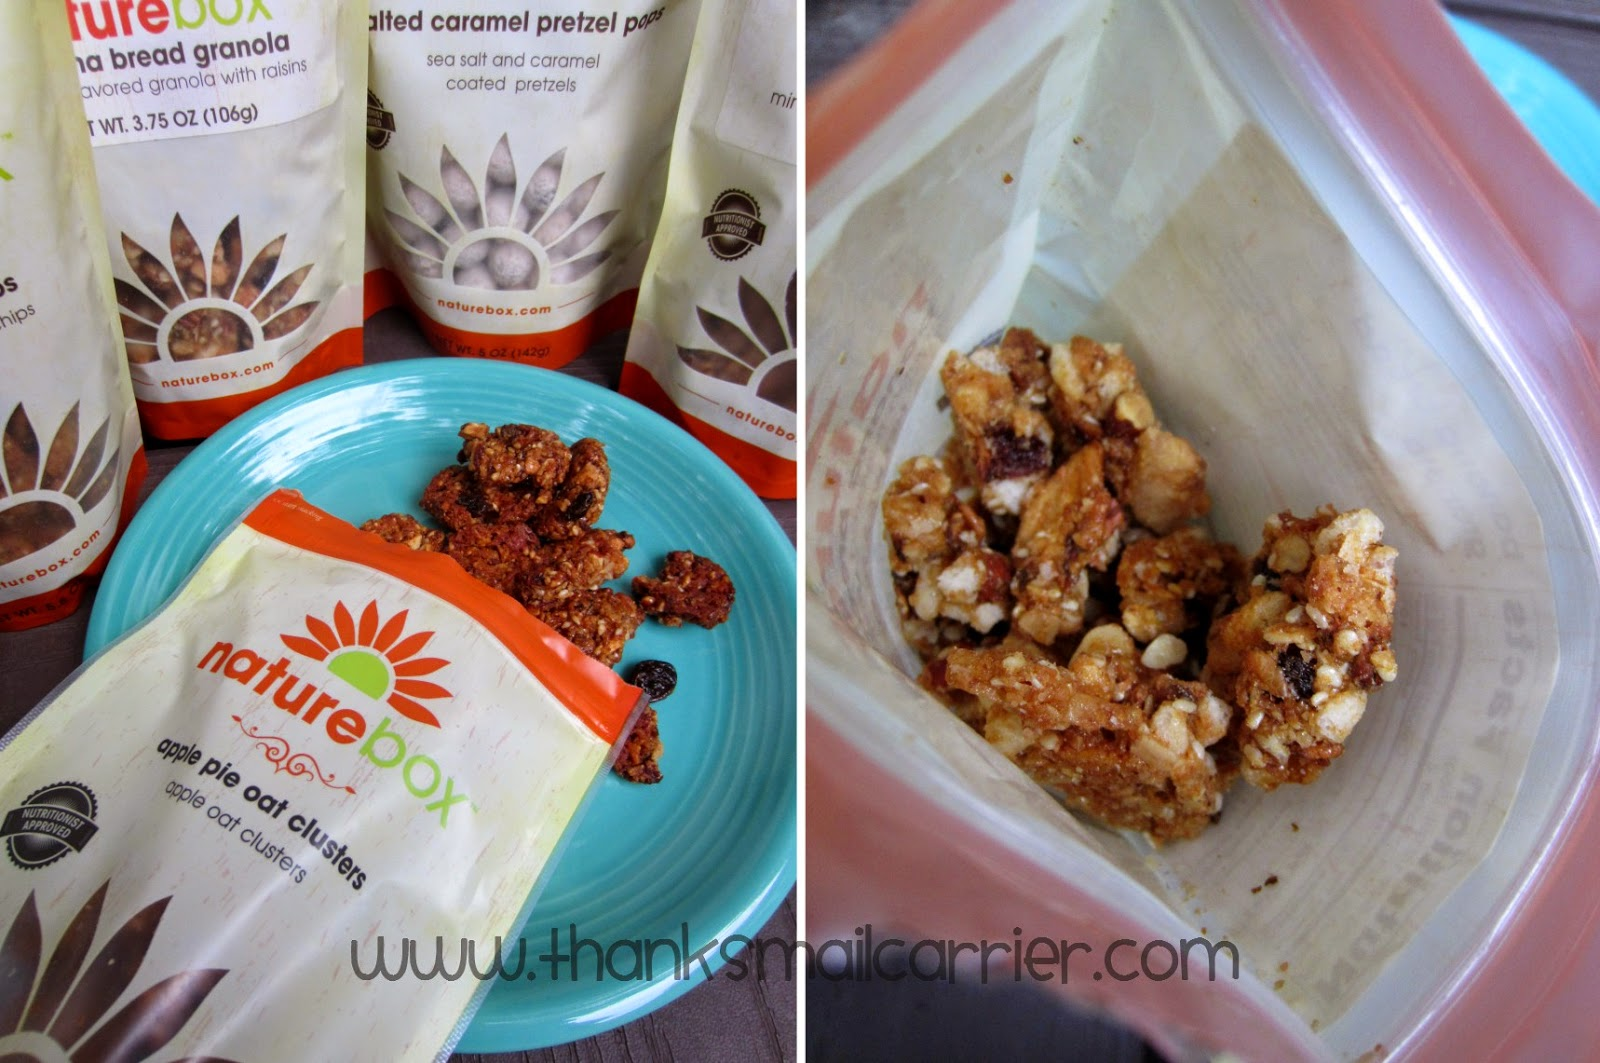 NatureBox granola